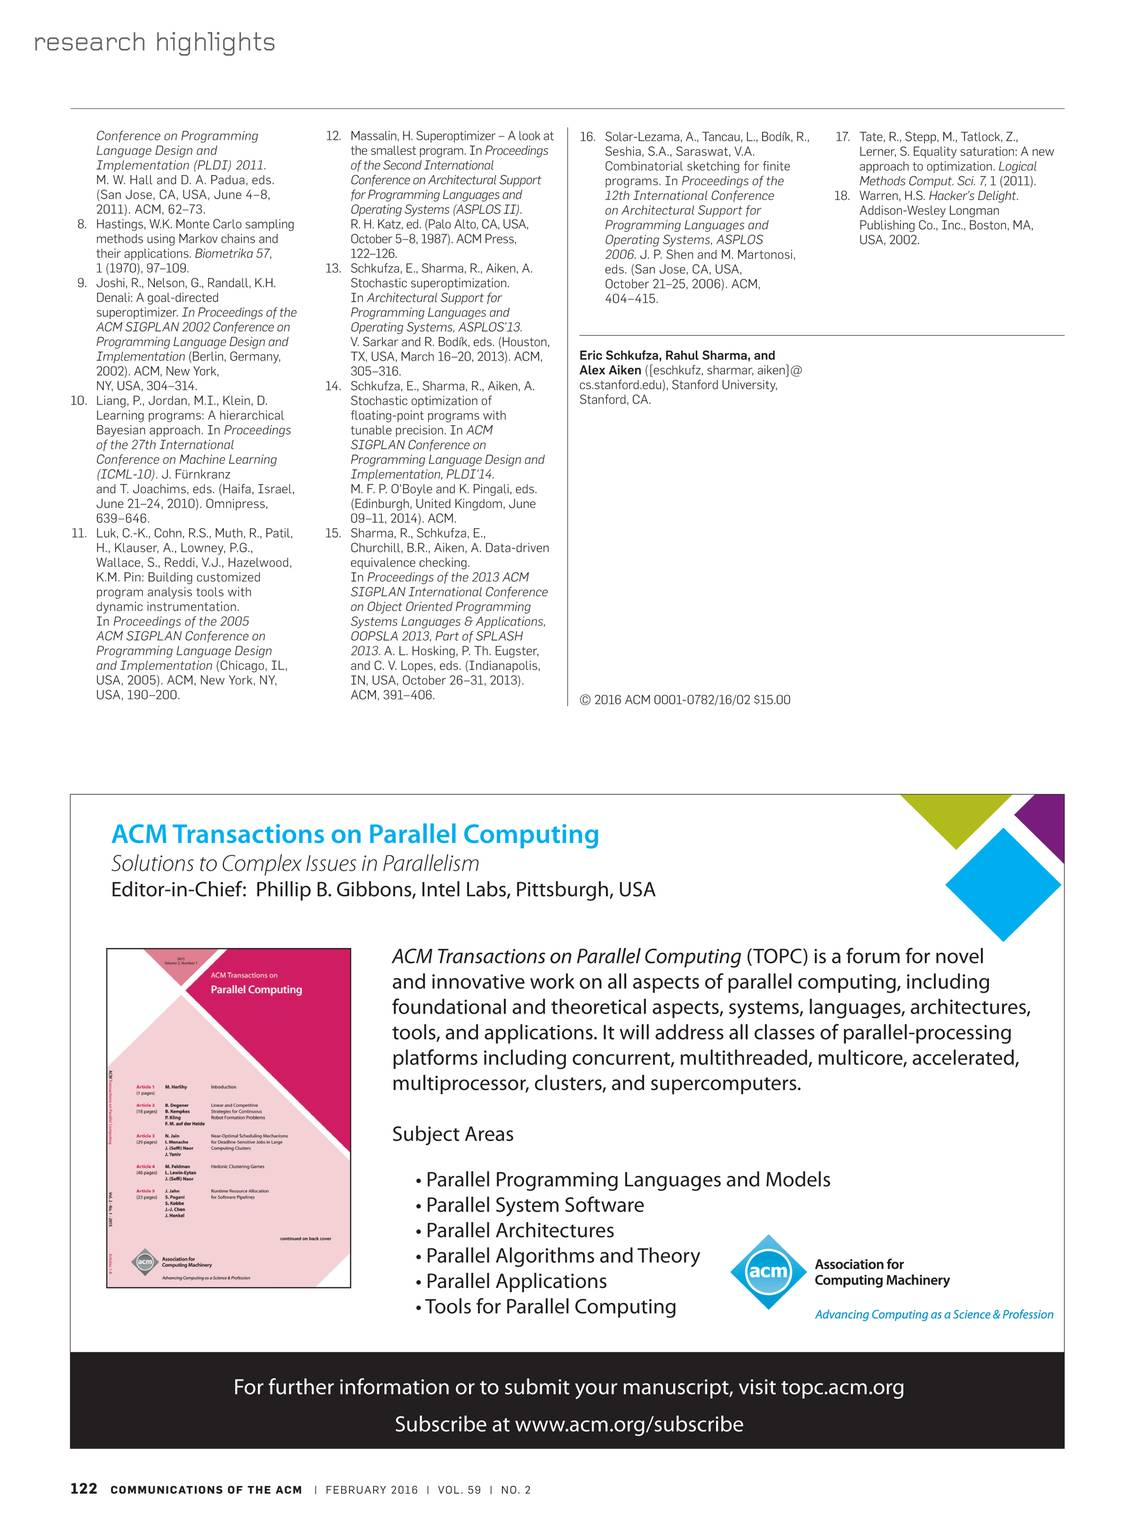 Communications of the ACM - February 2016 - page 122